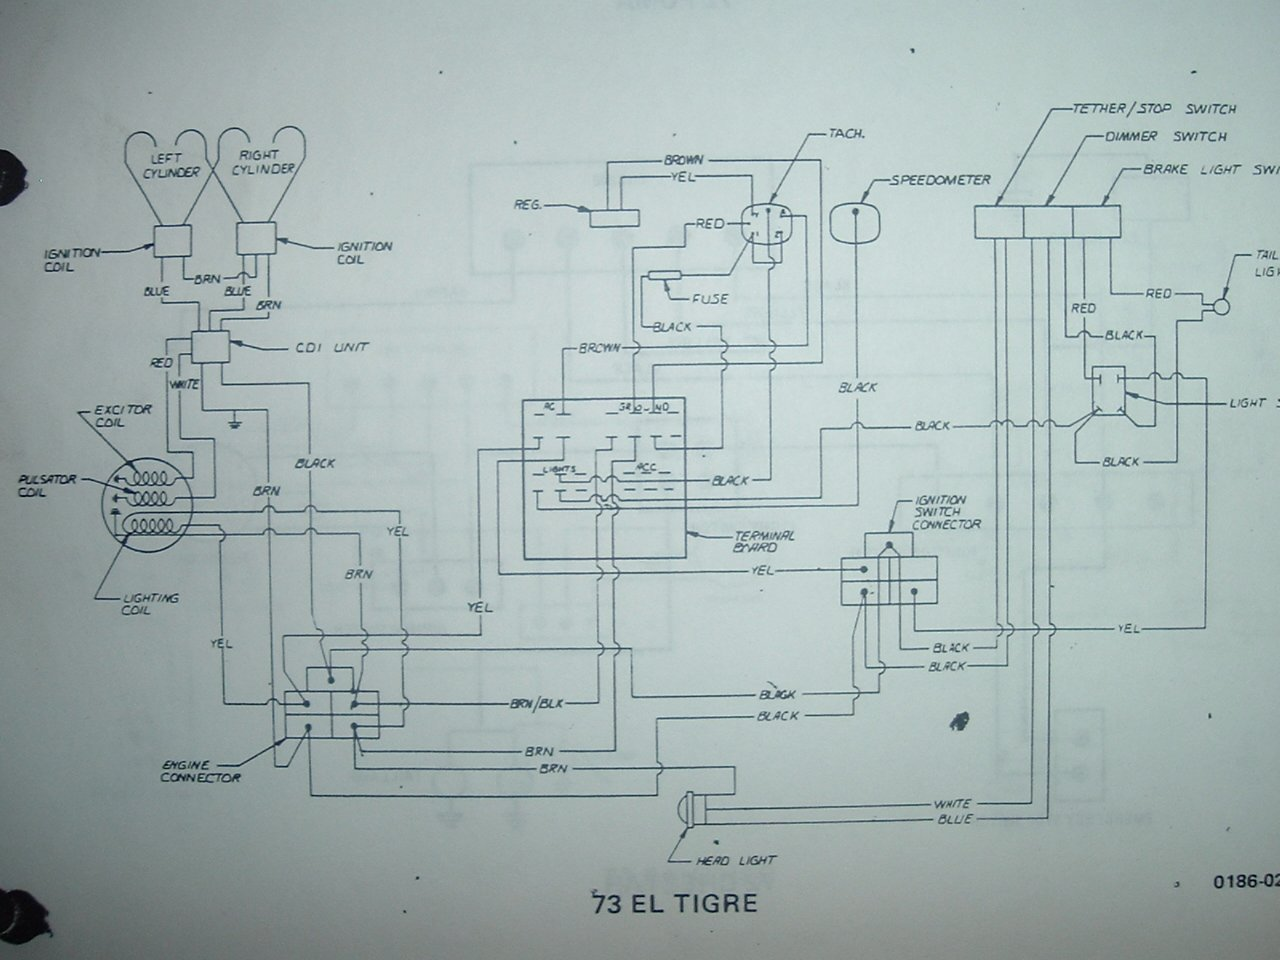 hight resolution of arctic cat jag wiring diagram 86 wiring library1973 arctic cat panther wiring diagram diy enthusiasts wiring